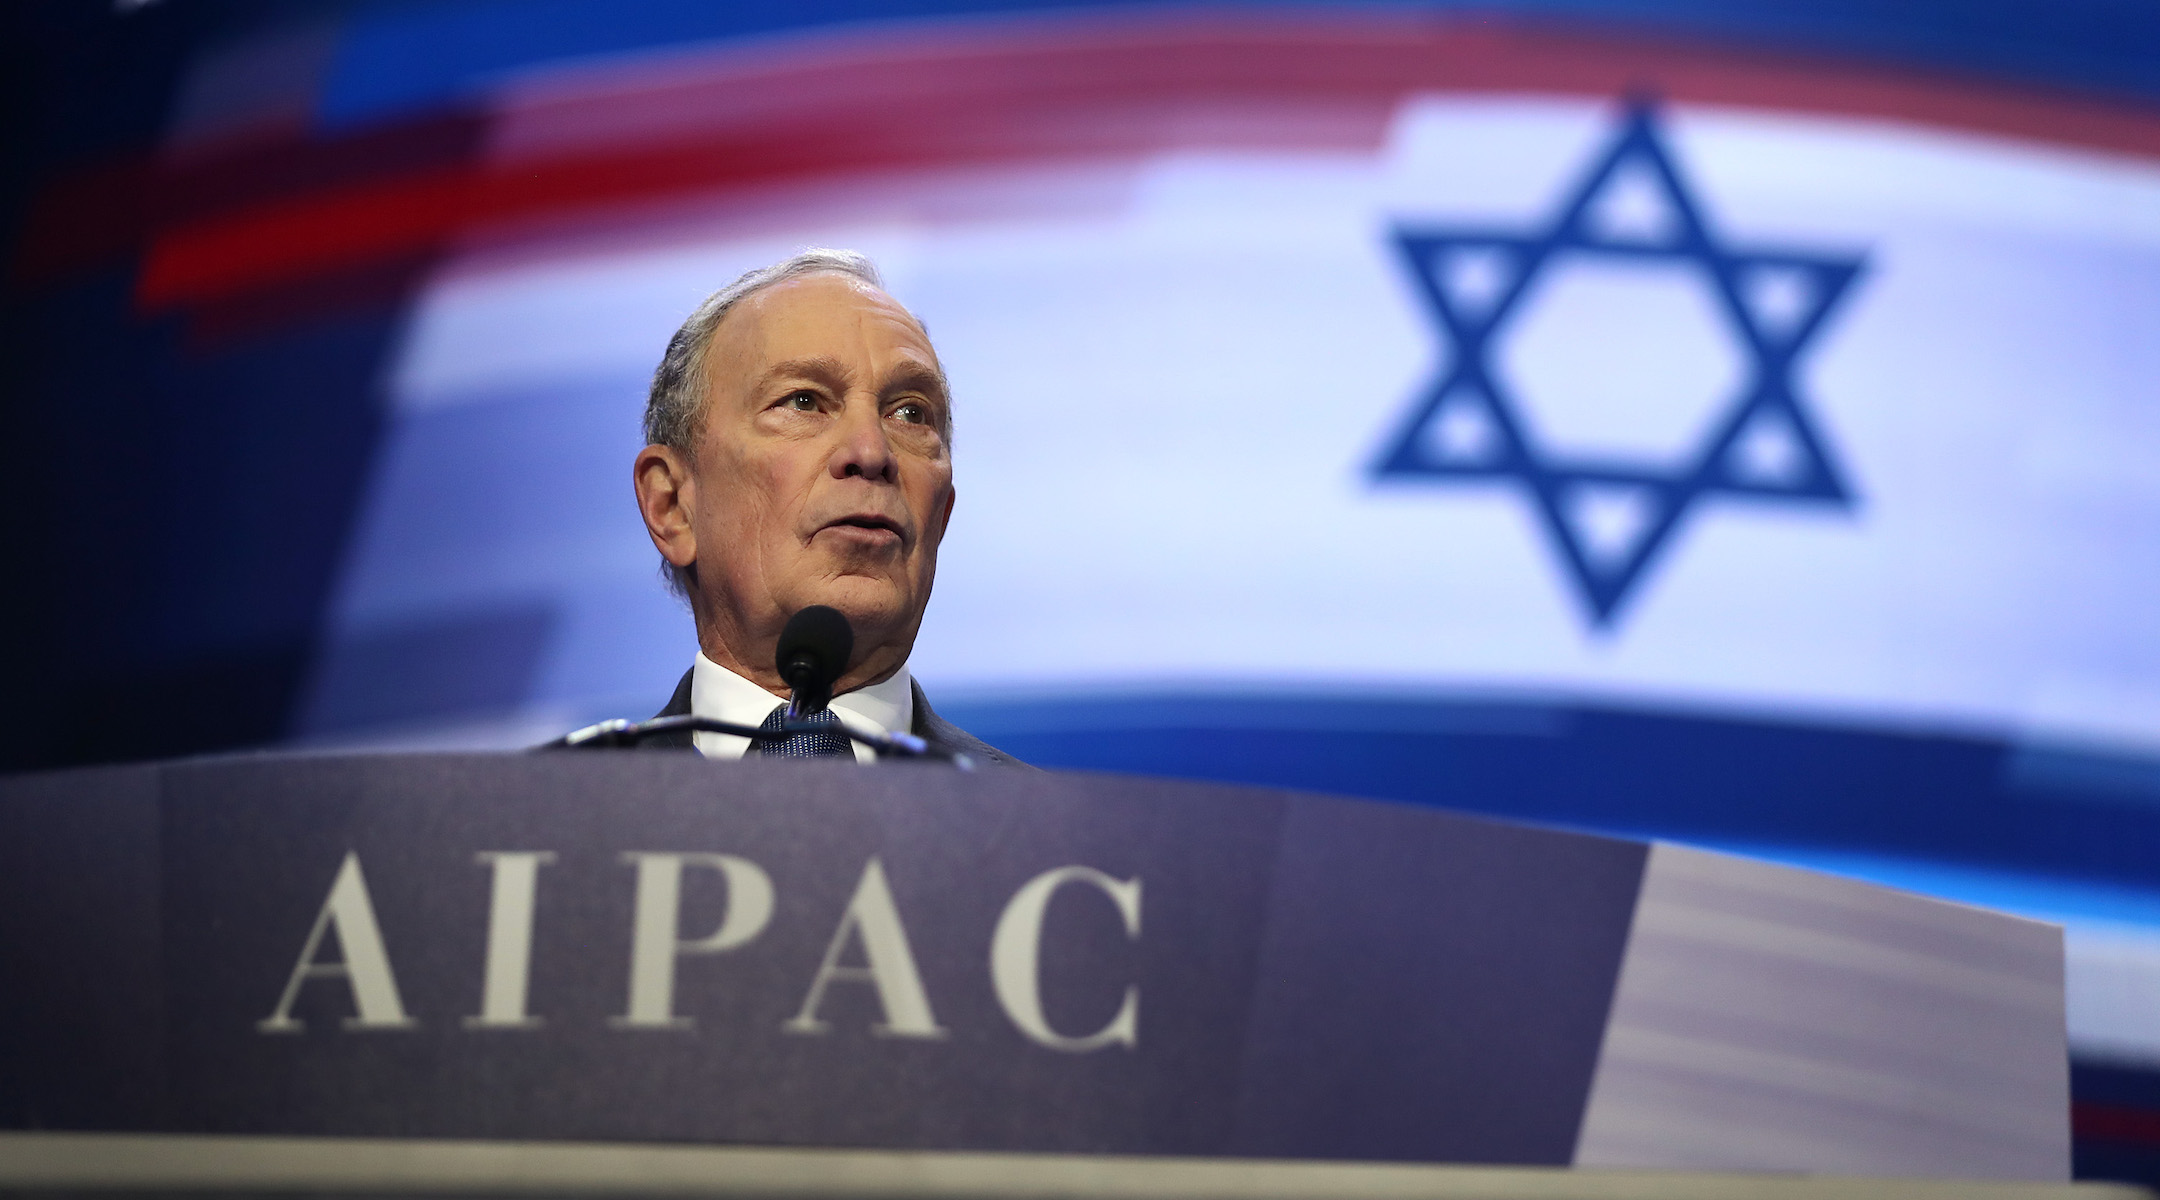 Presidential candidate and former New York City Mayor Mike Bloomberg speaks during the American Israel Public Affairs Committee Policy Conference in Washington, DC on March 2, 2020. (Saul Loeb/Getty Images)